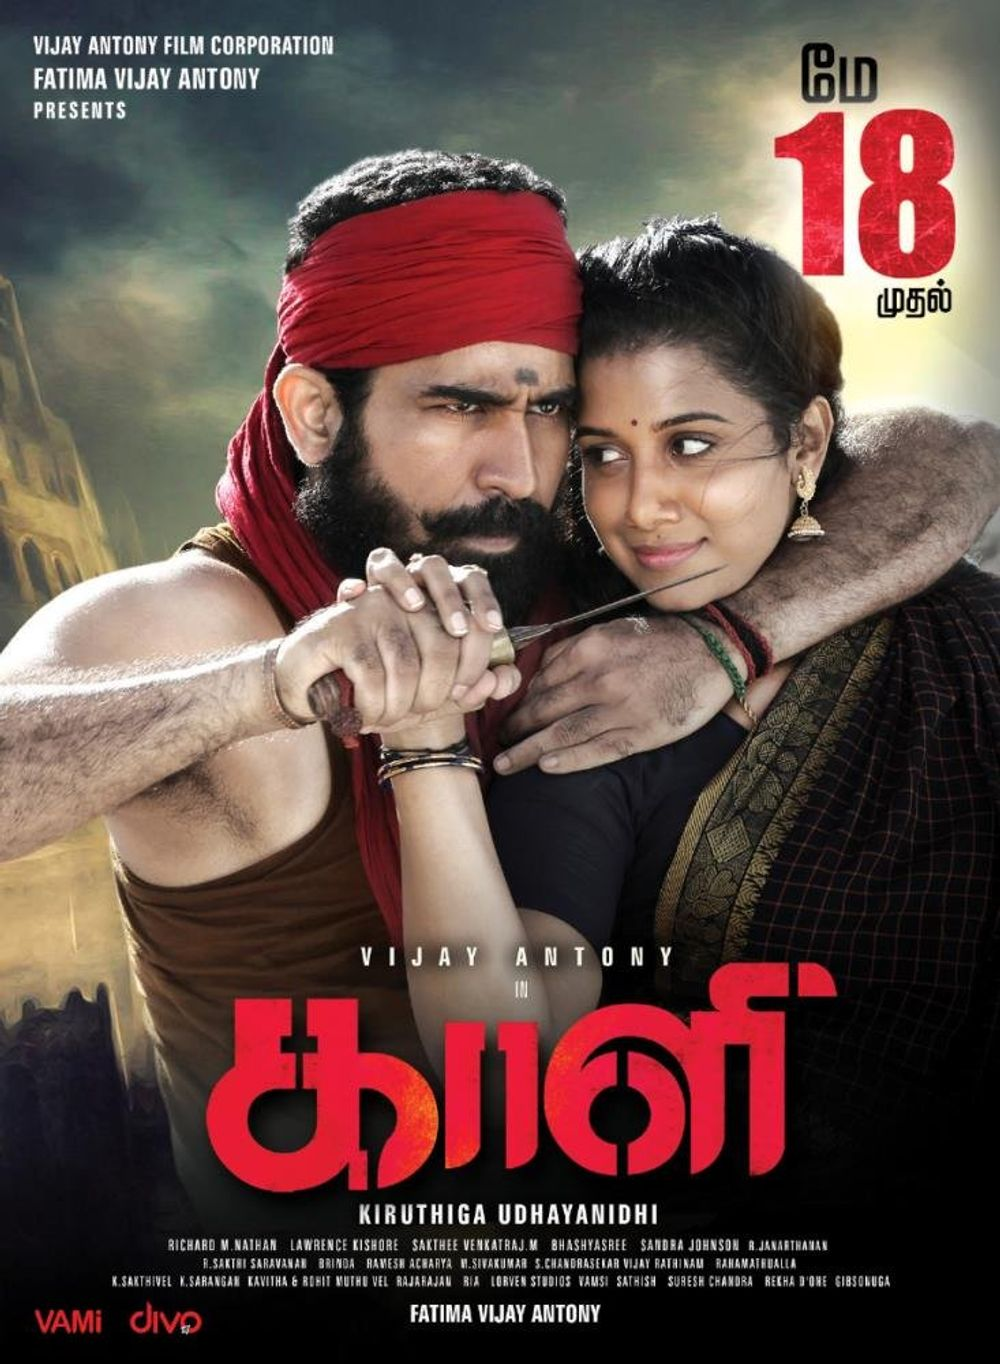 Kaali (Jawab The Justice) 2018 Hindi Dual Audio 480p UNCUT HDRip ESubs 450MB X264 AAC